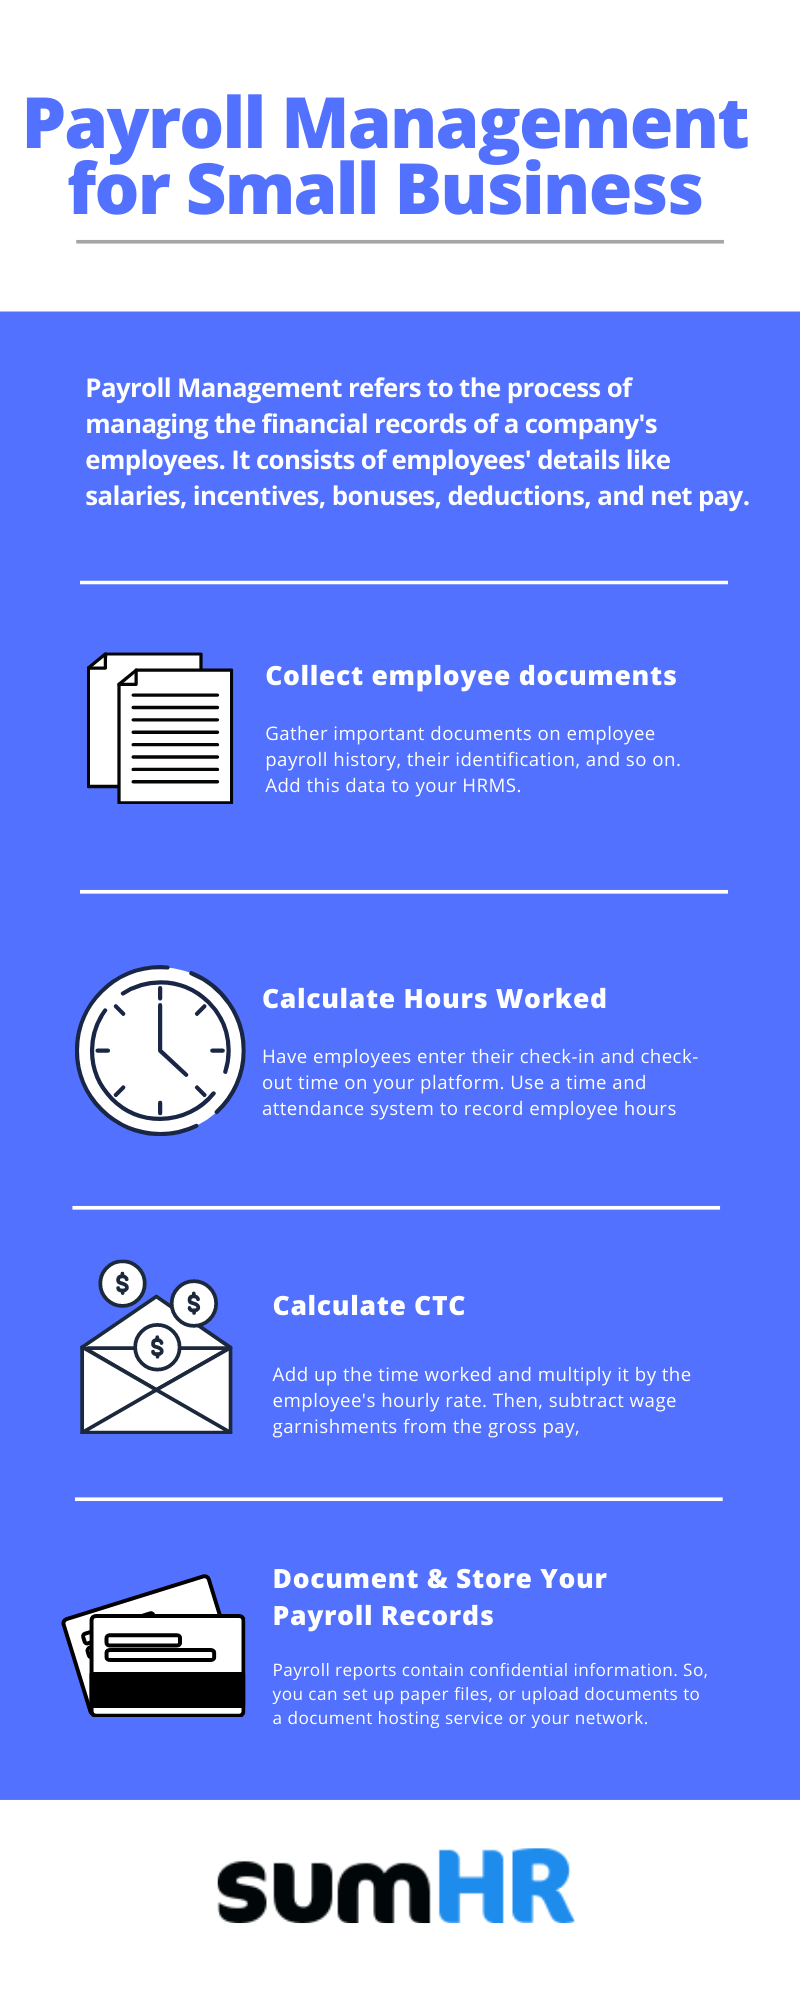 Steps for Payroll Management of Small Businesses